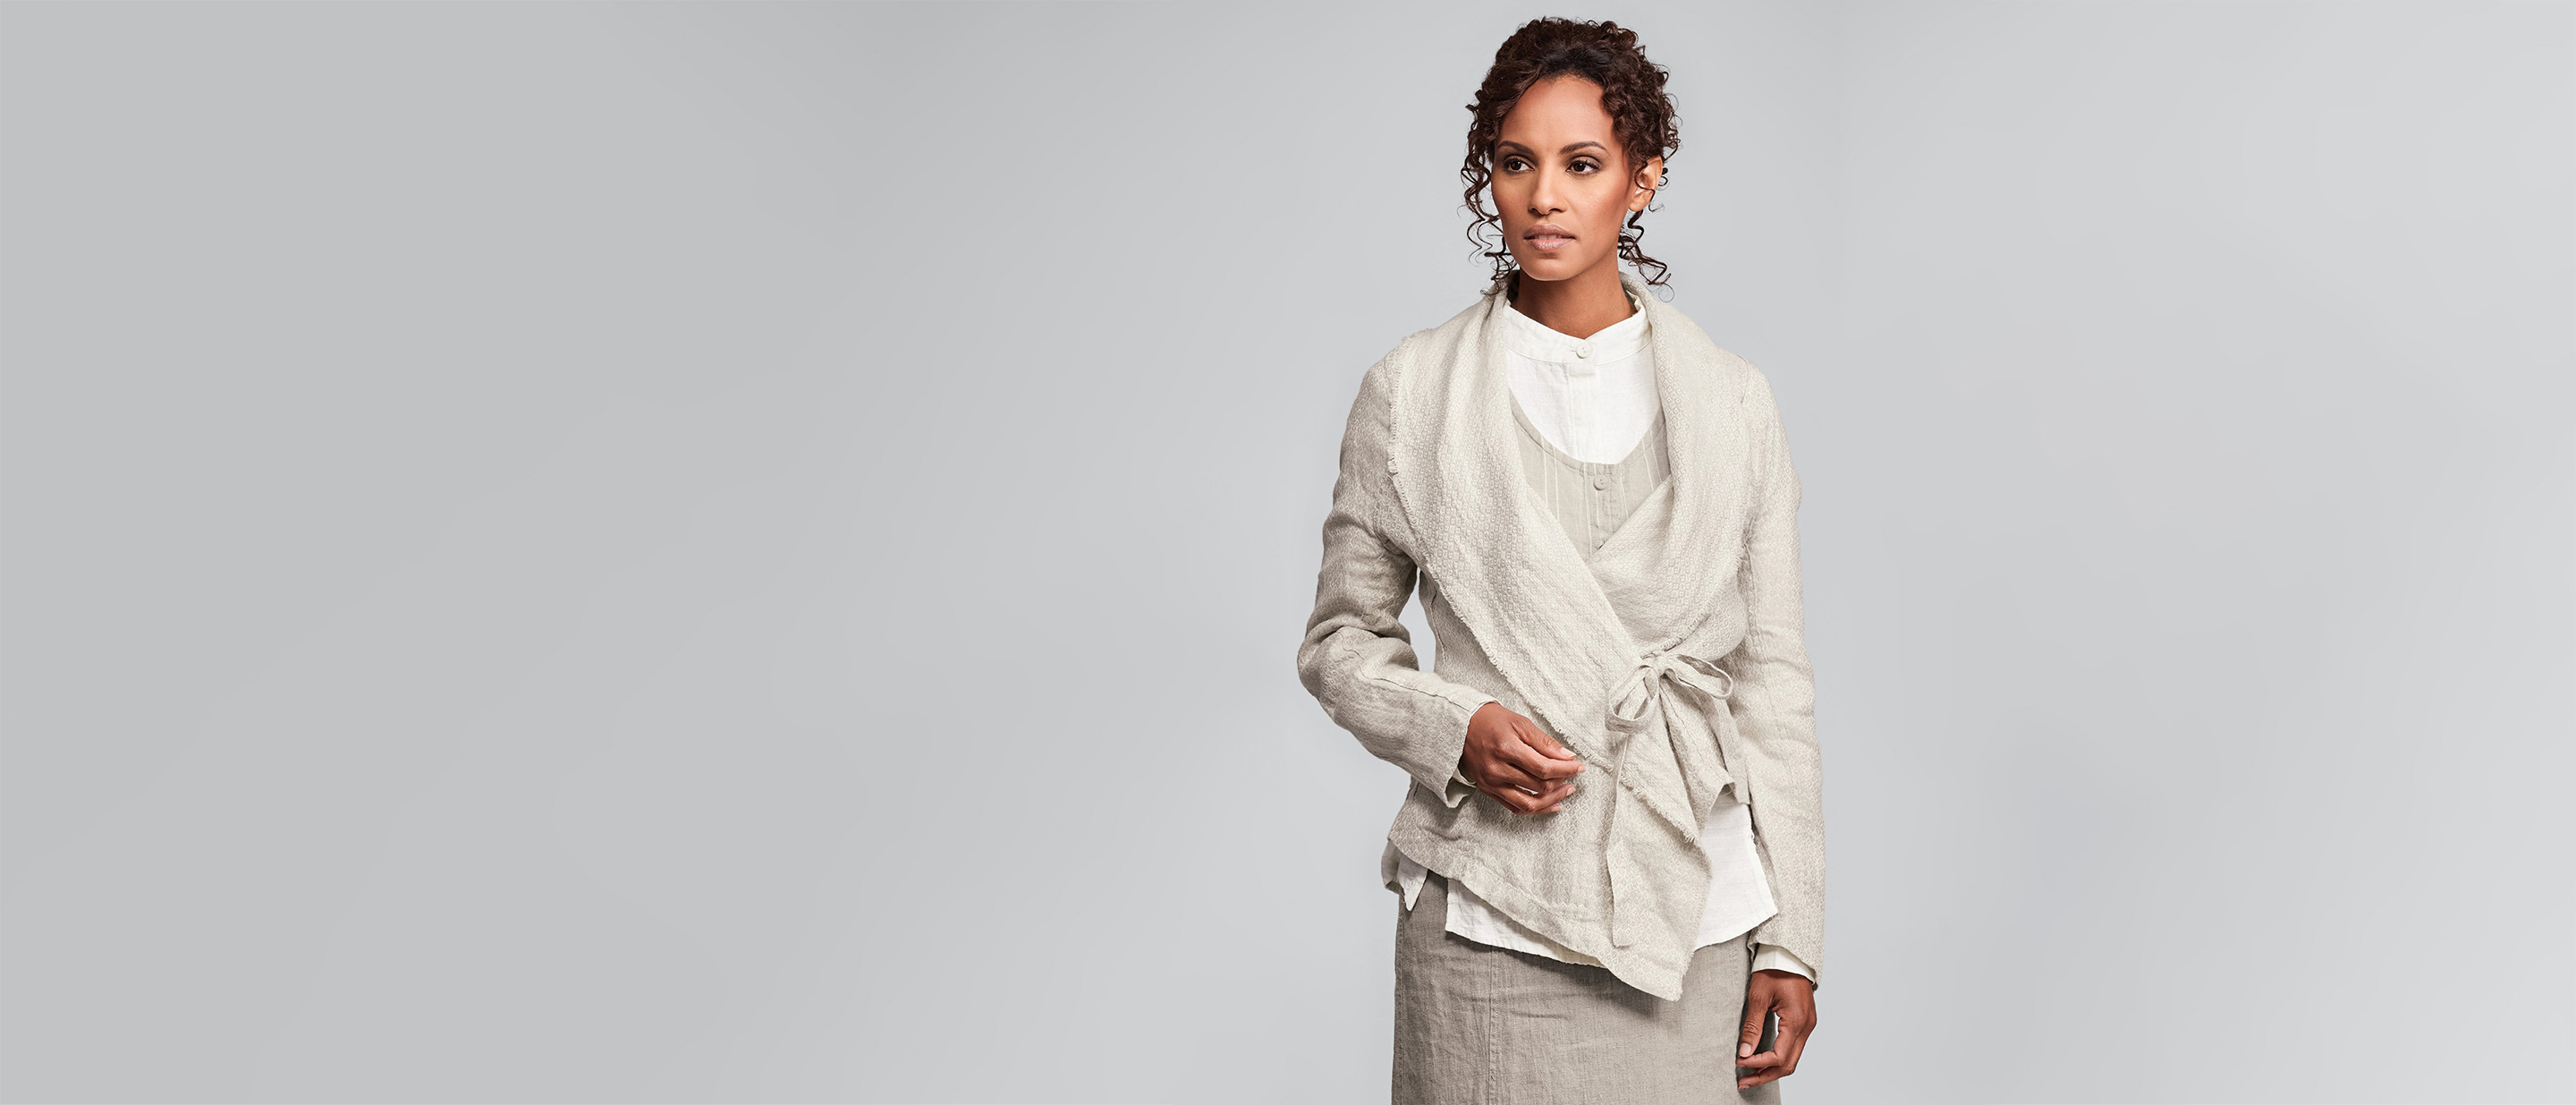 flax barn sale women's linen clothing sale